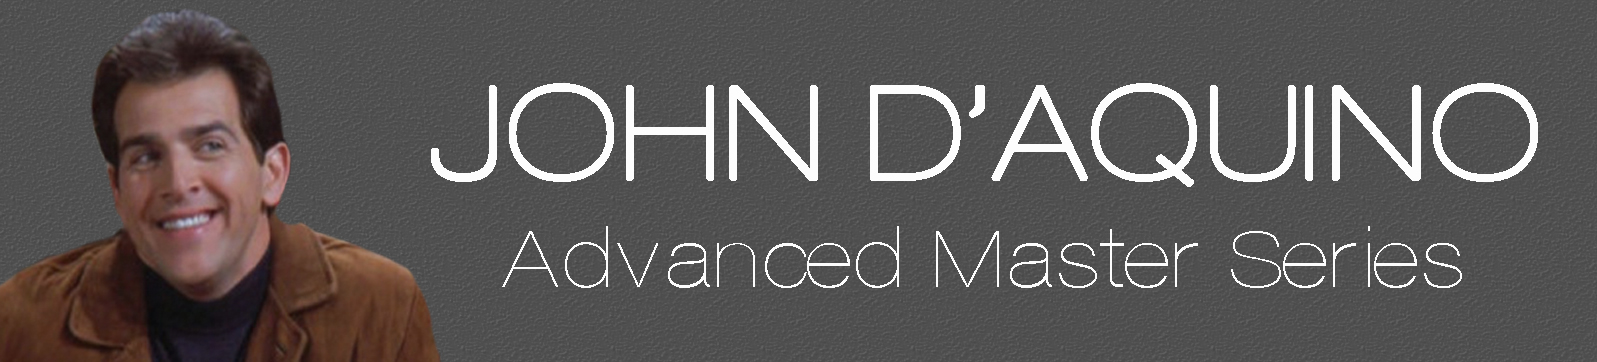 Advanced Master Series - John D'Aquino